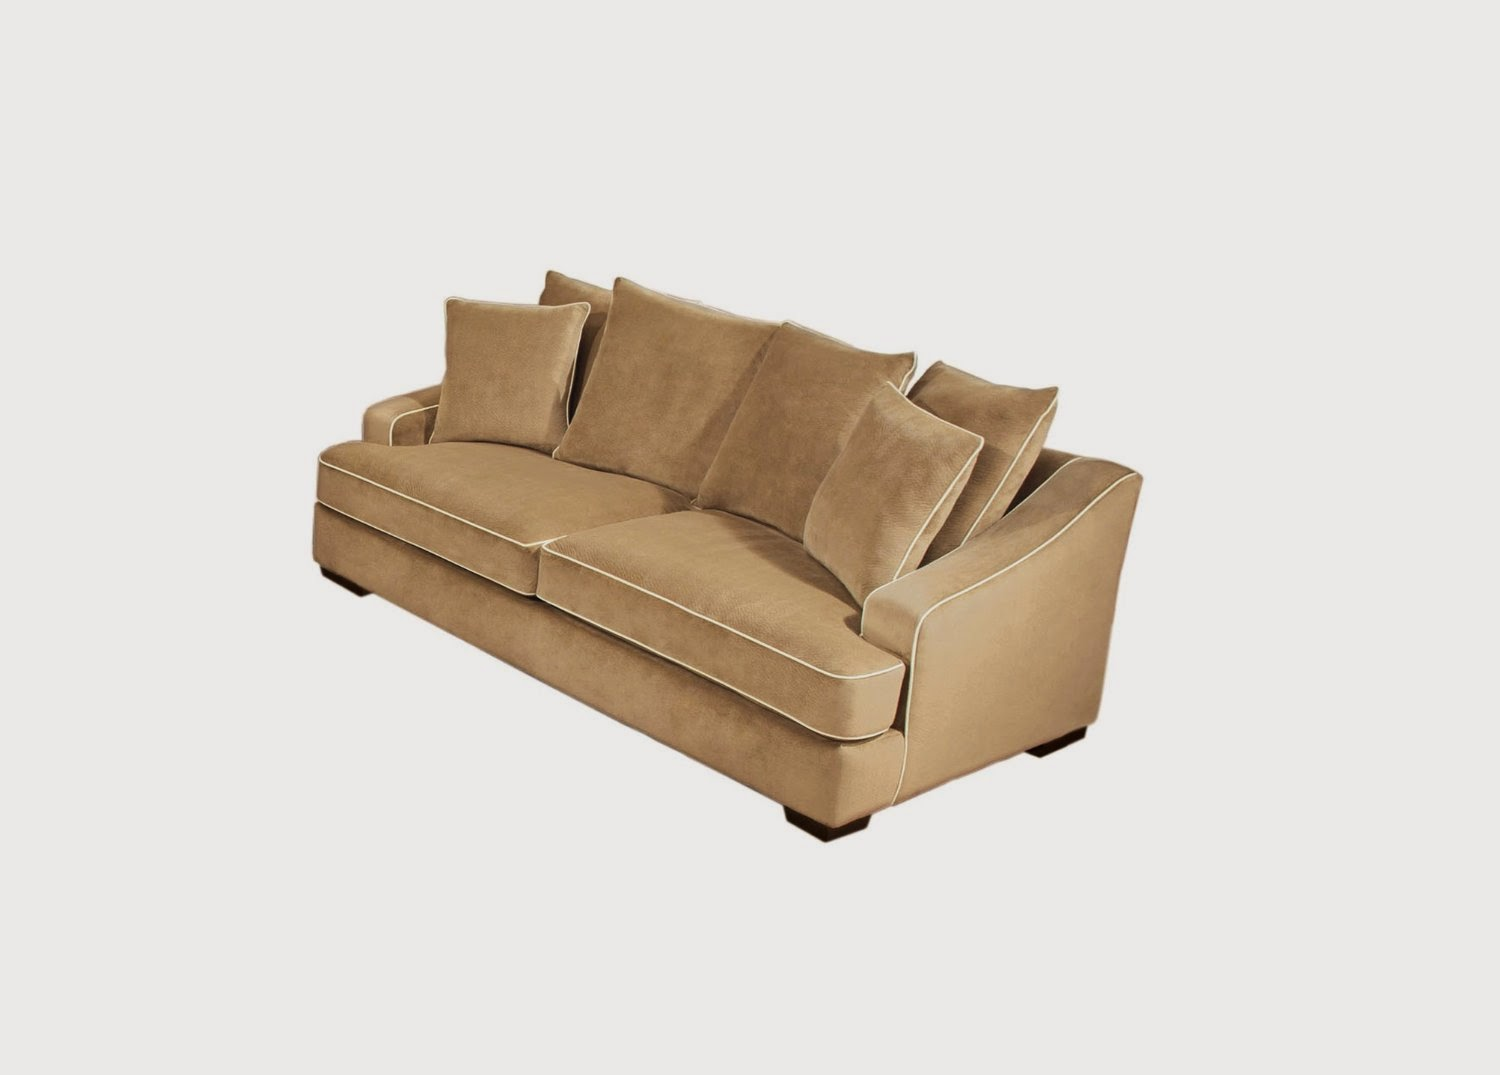 Curved Sofa Couch For Sale: Sofa Curved Front